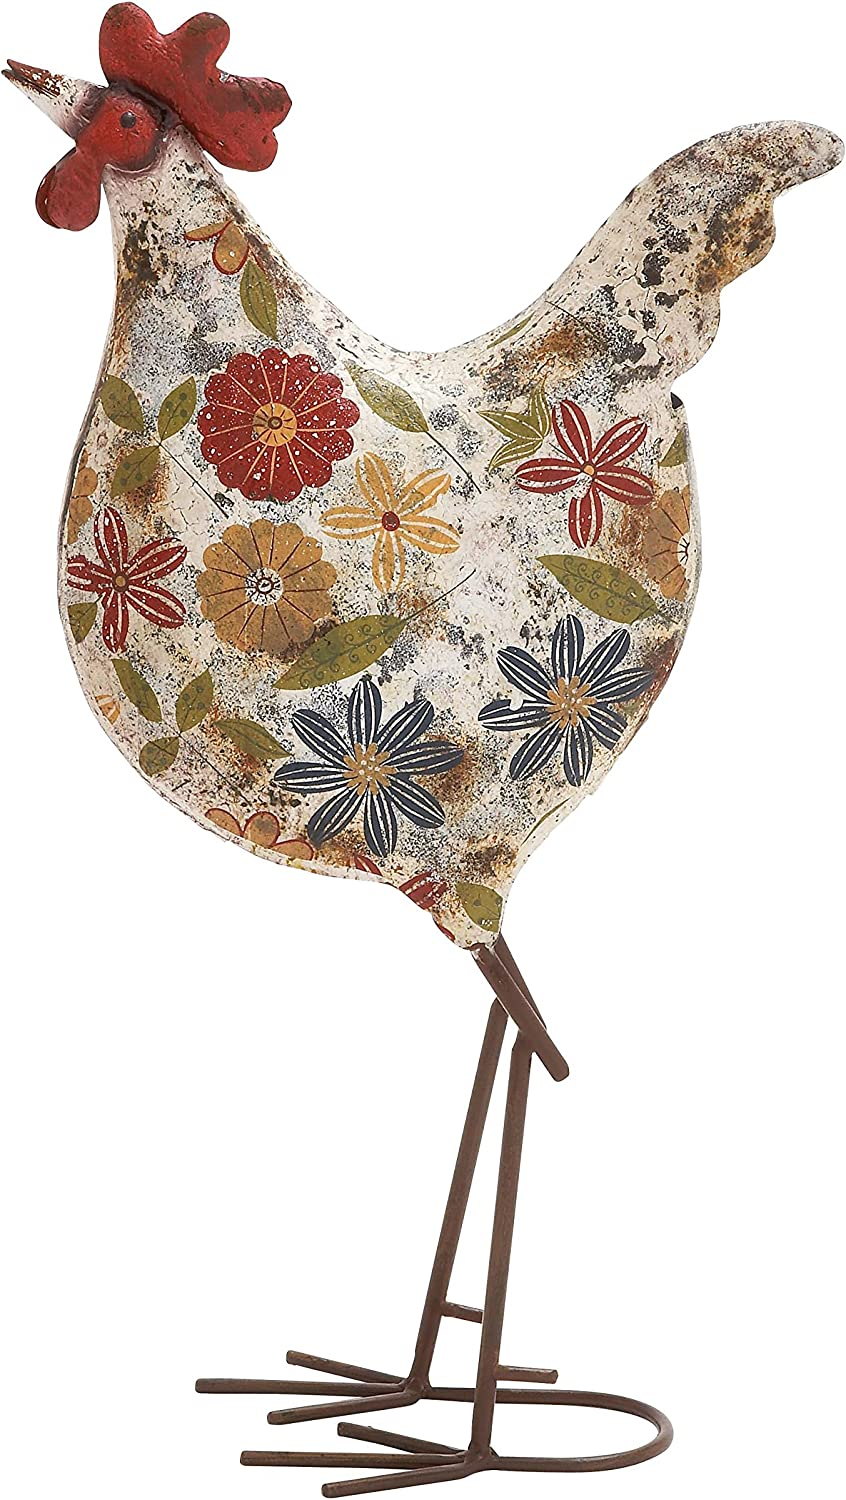 Deco 79 Metal Rooster Lawn Decor, 10-Inch by 17-Inch